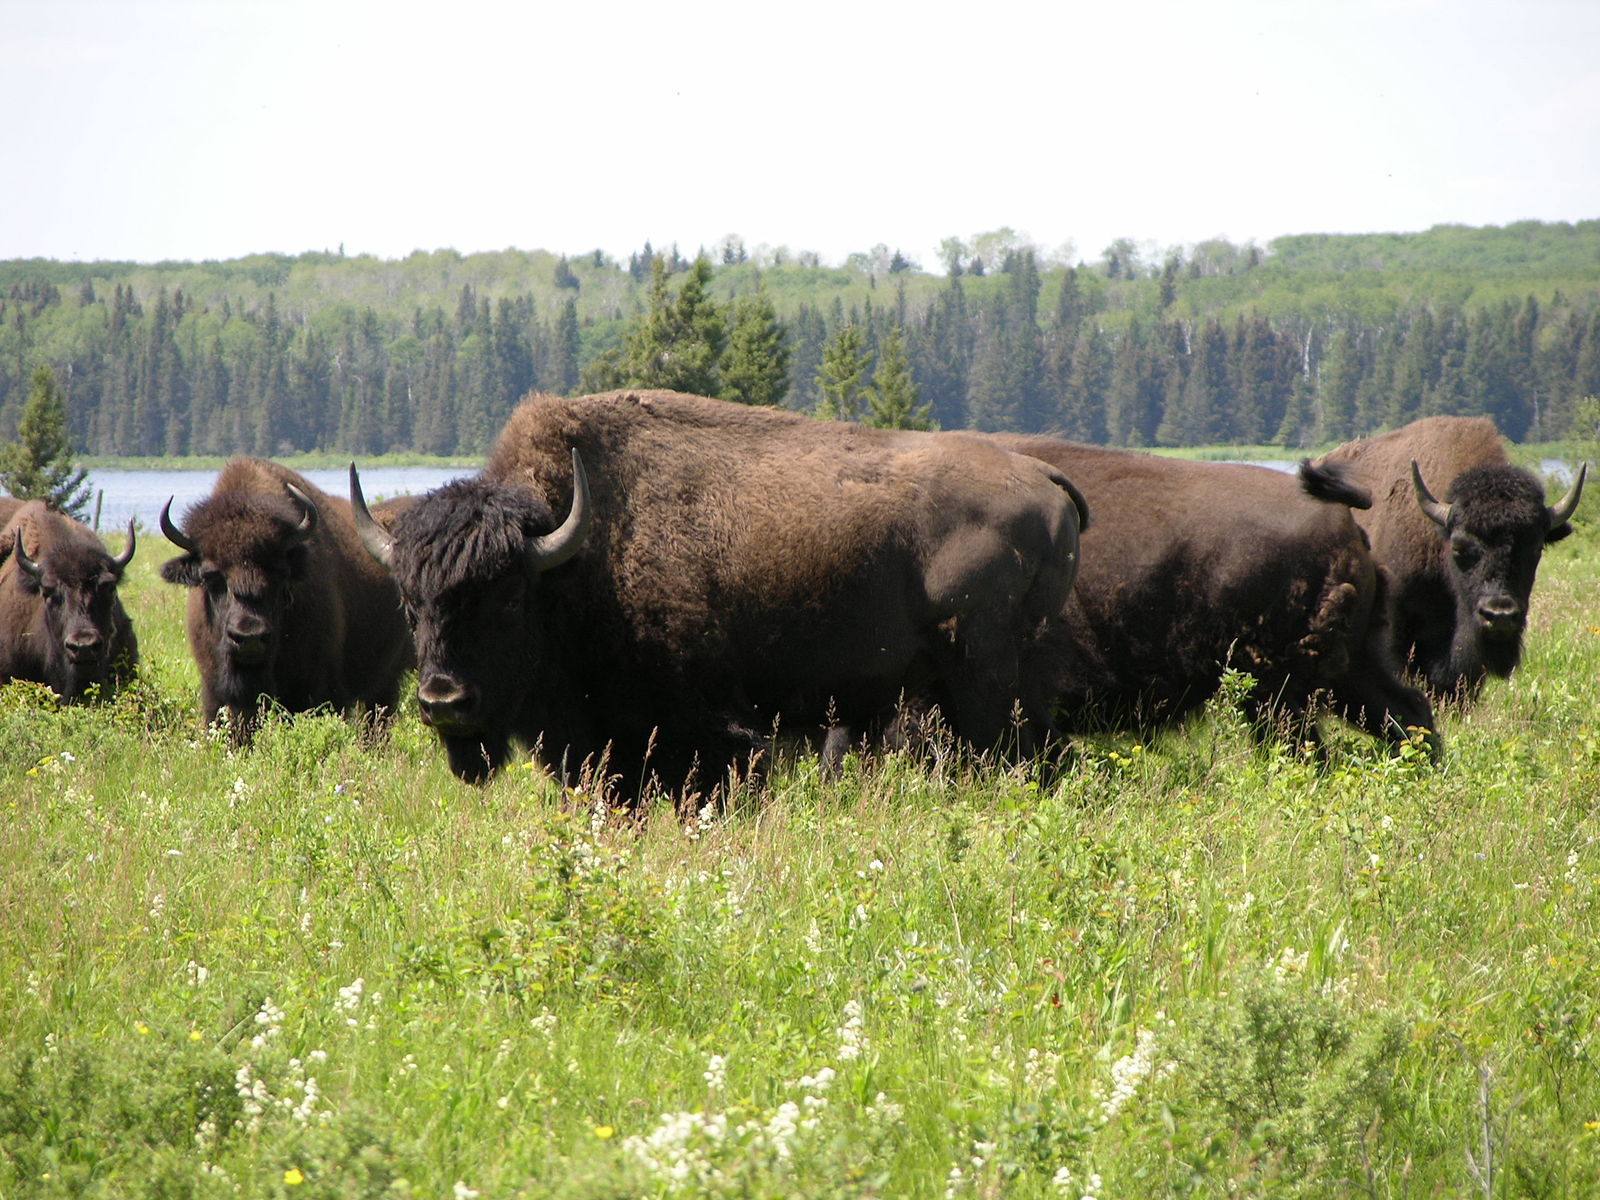 Plains bison in a field with water and forest in background